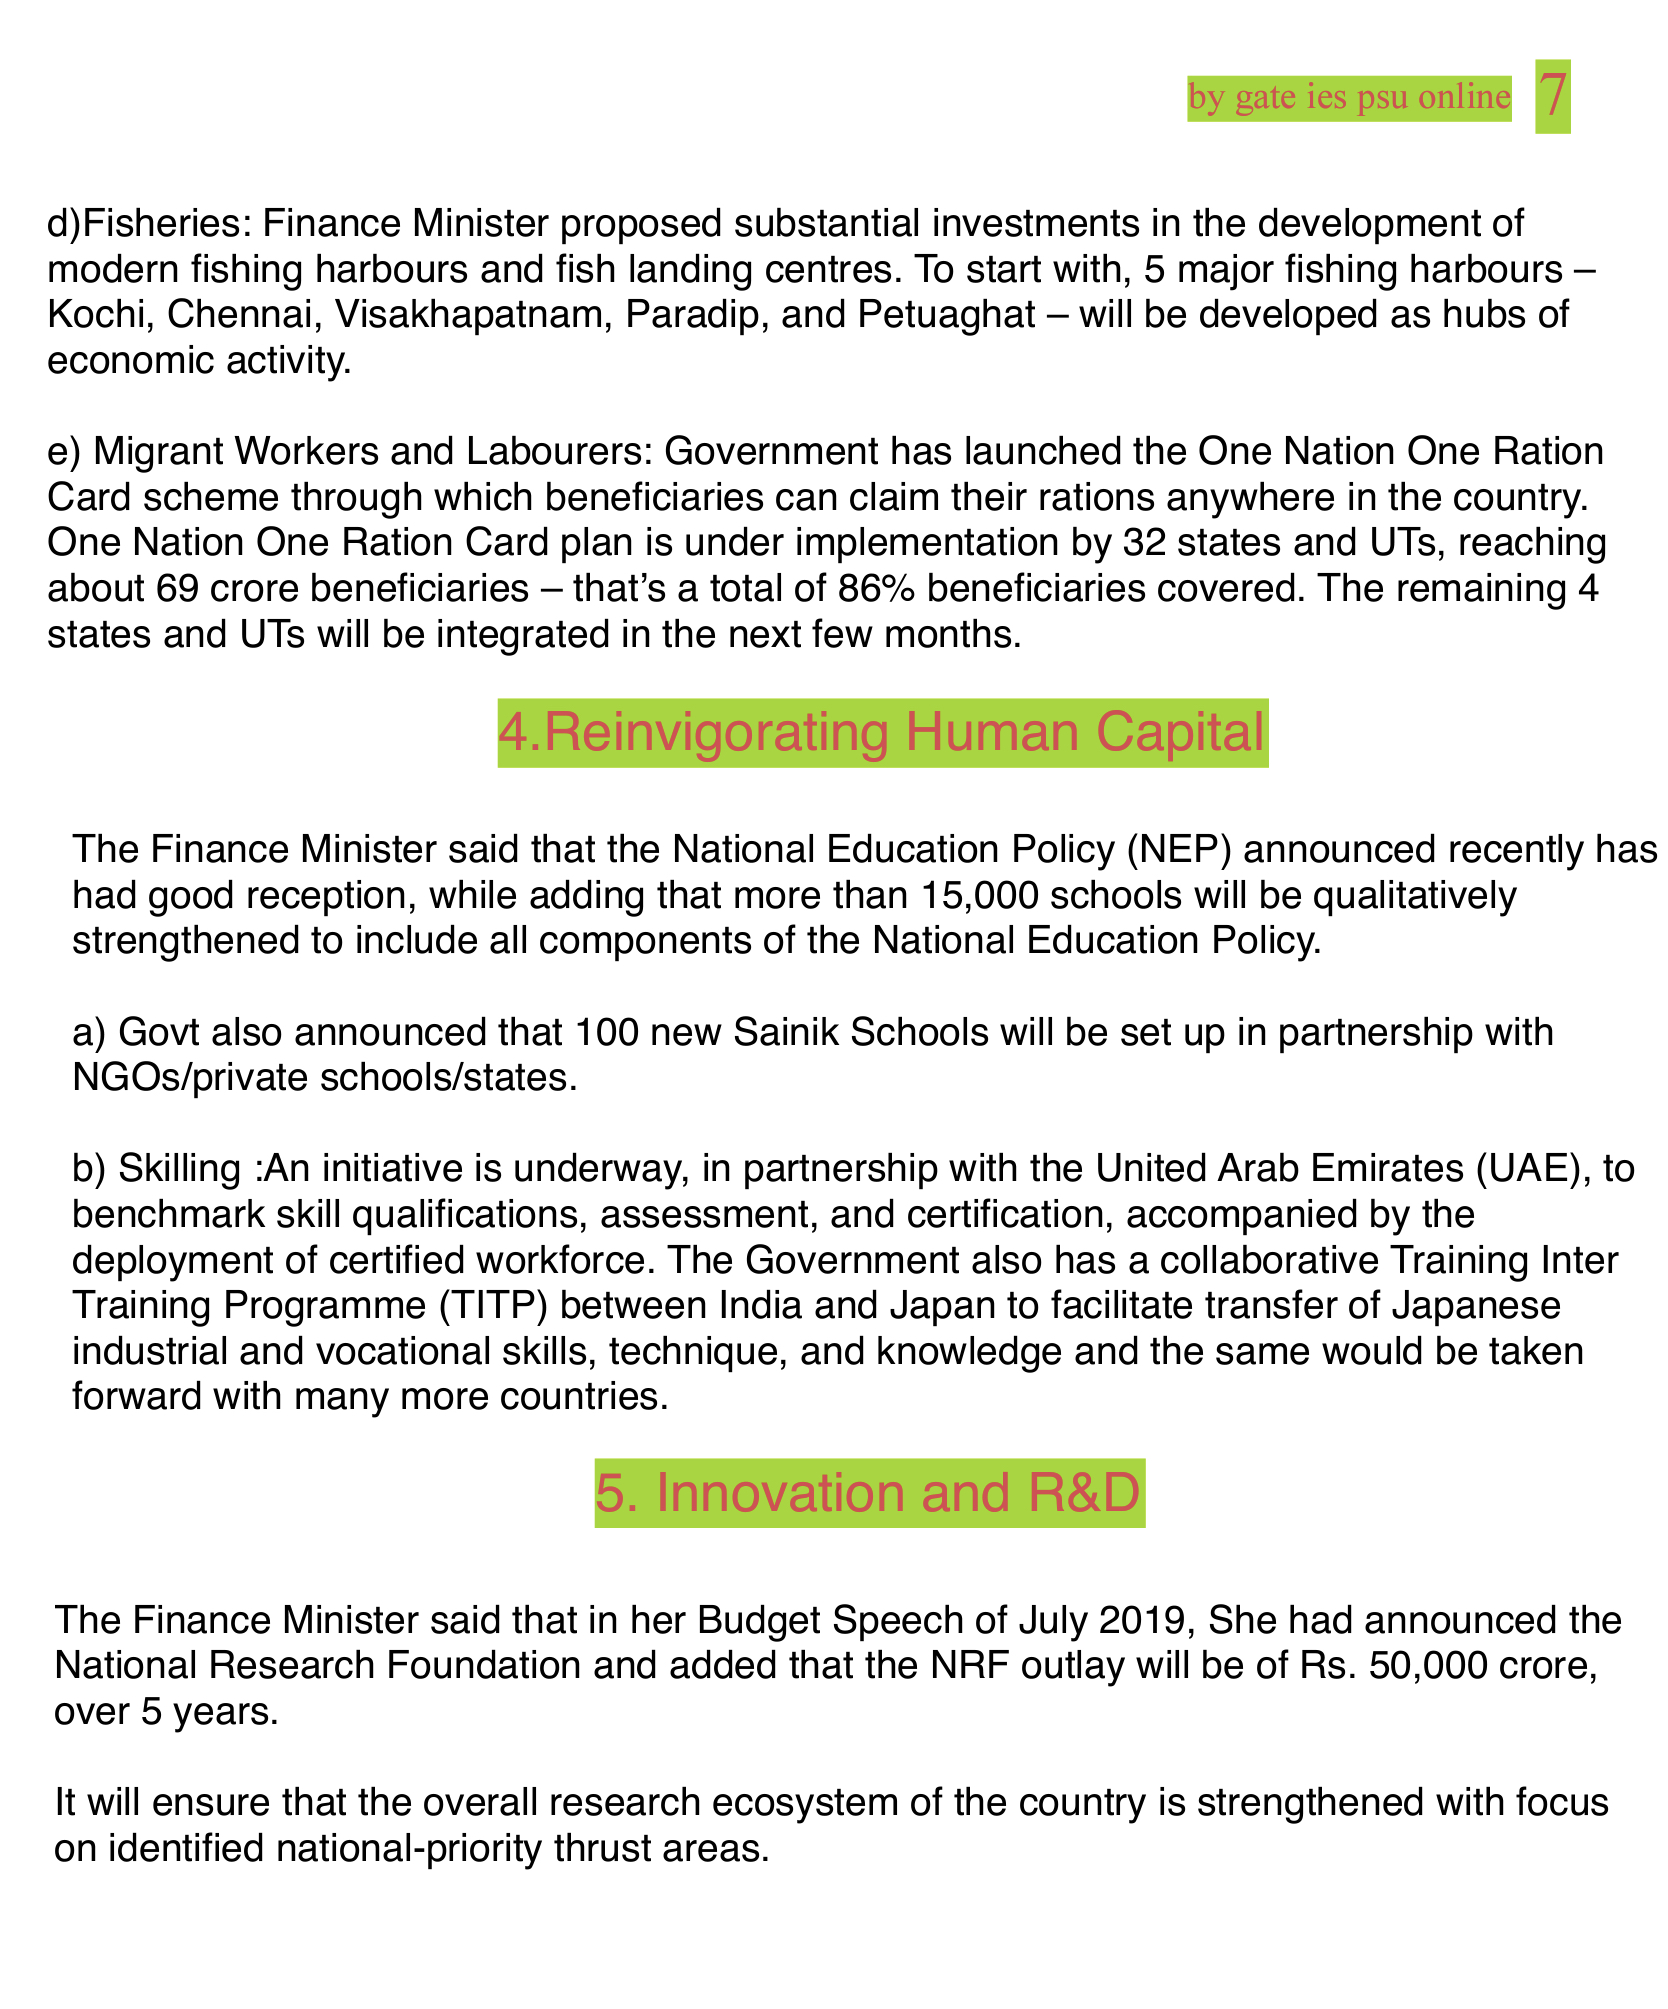 NEP, NRF national research fund, UPSC CURRENT AFFAIRS